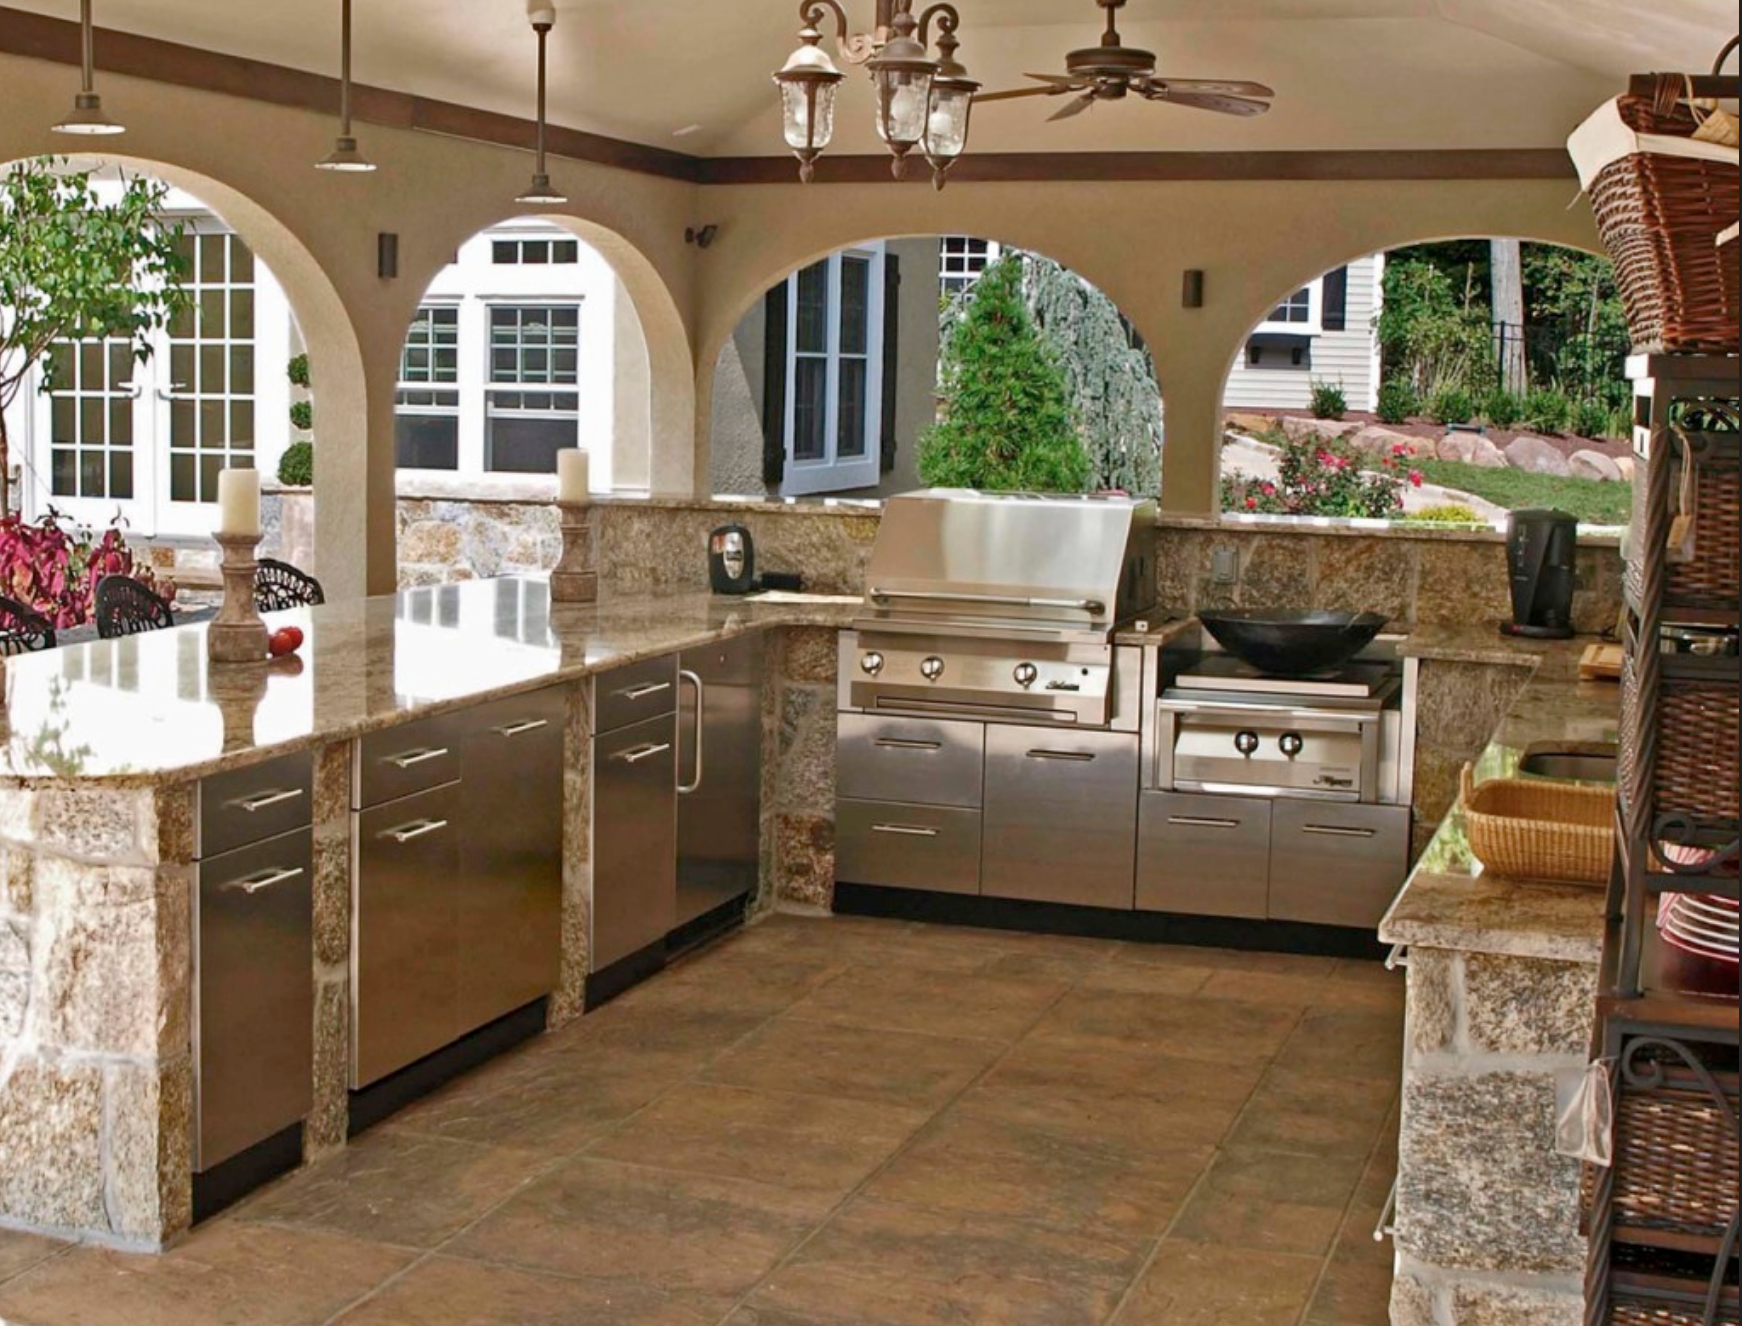 Outdoor Kitchens in LA, CA